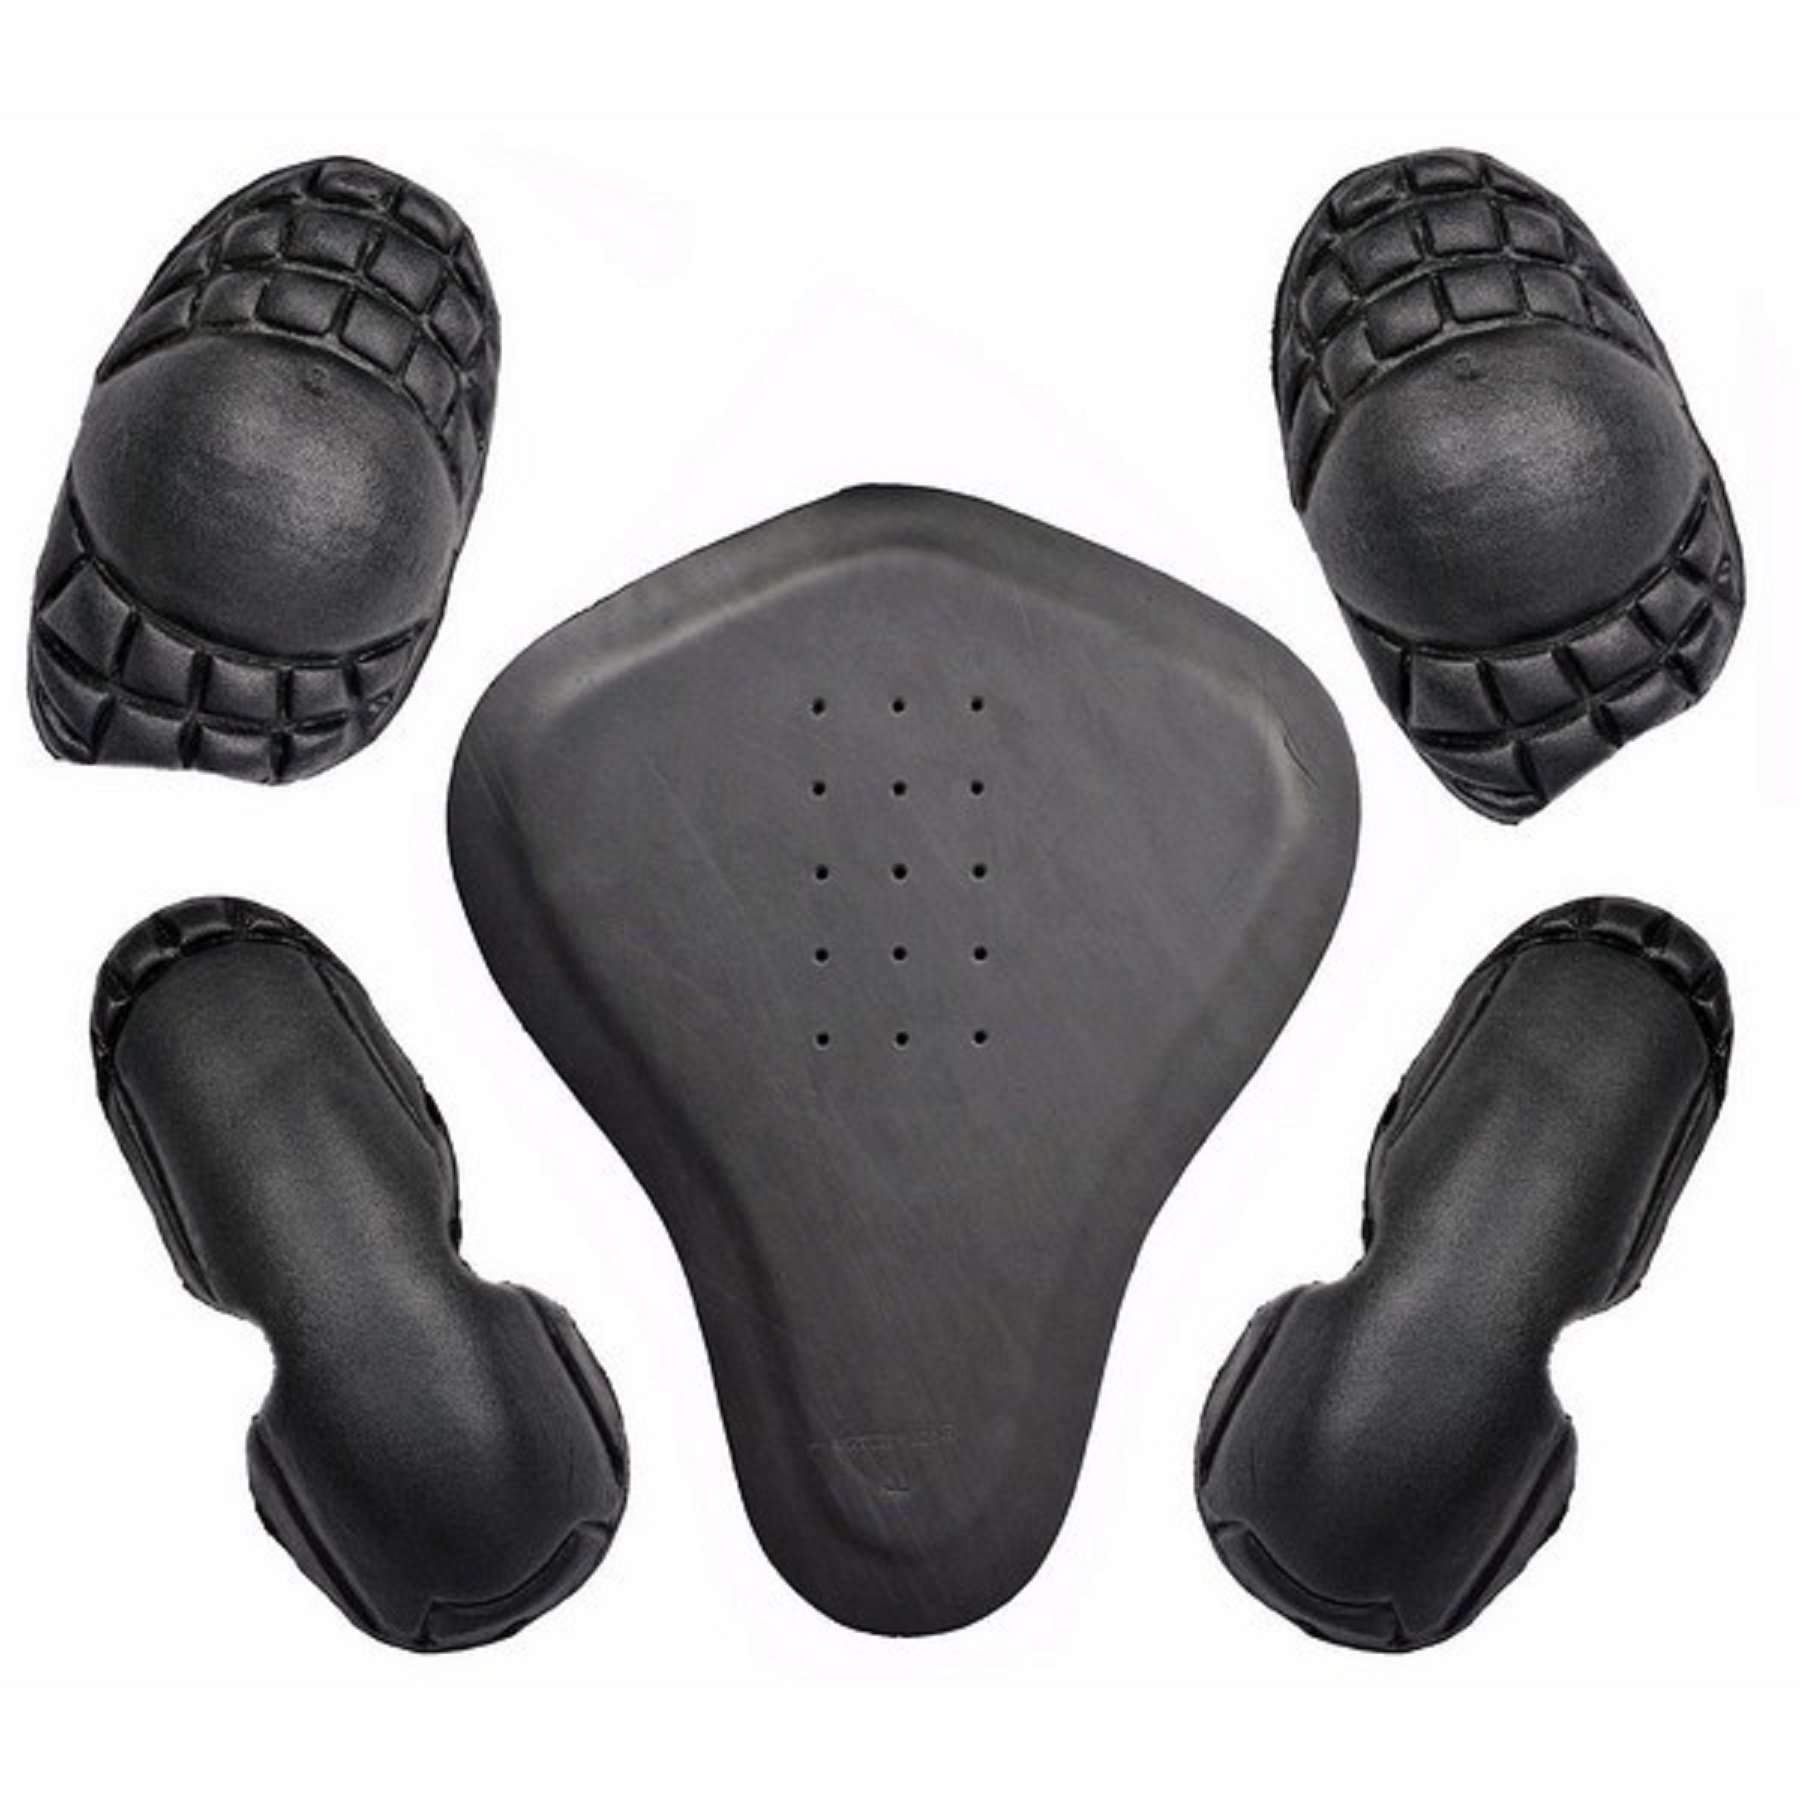 5-PC-Removable-EVA-Foam-Protector-For-Motorcycle-Biker-Jackets